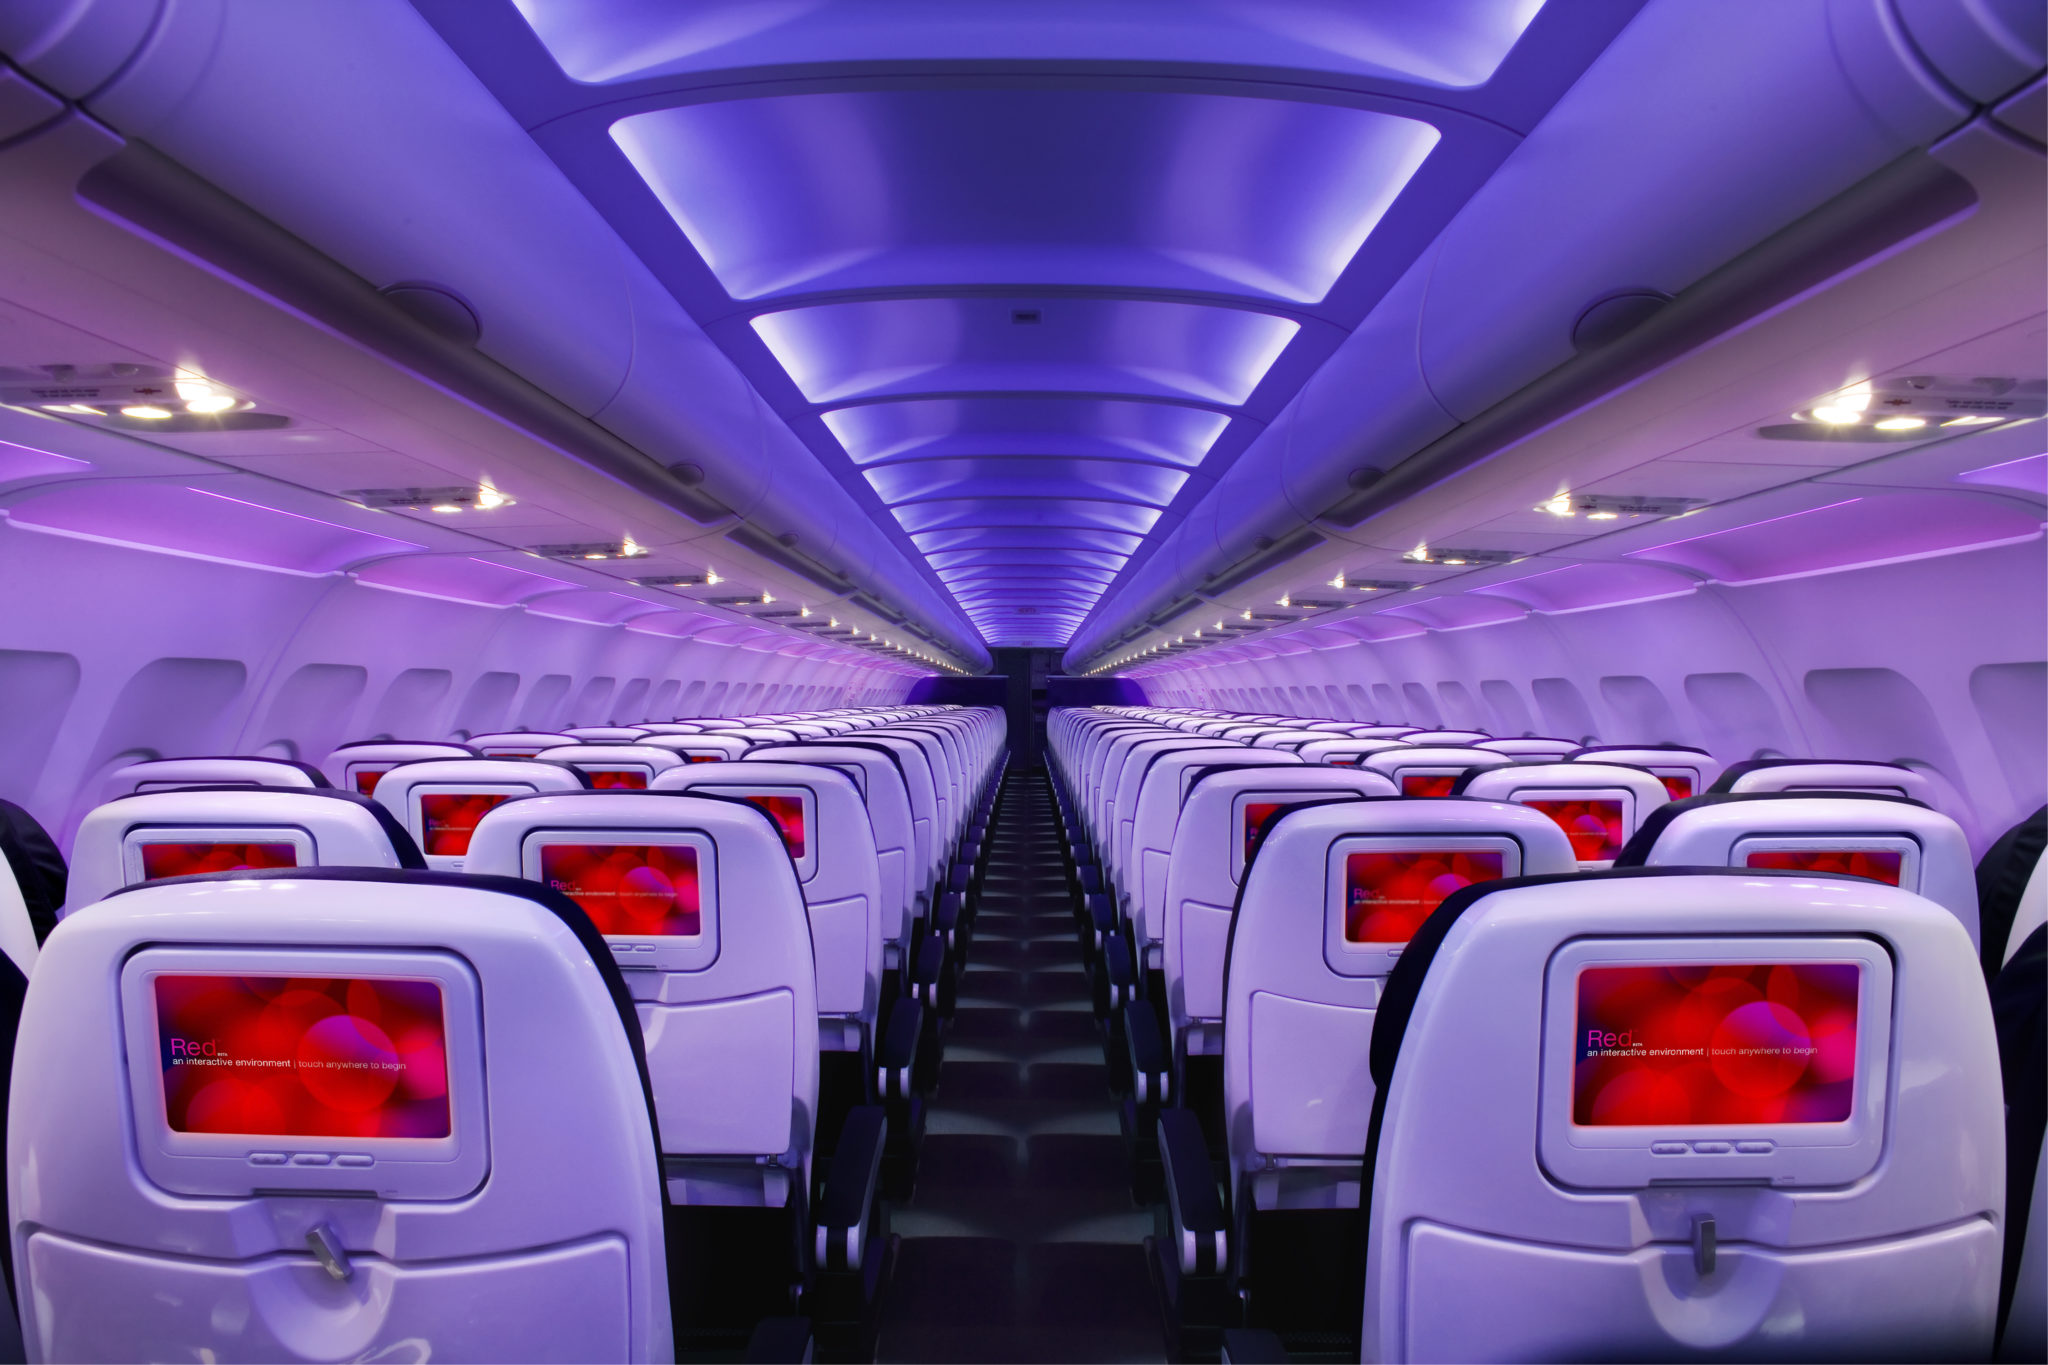 Virgin America Reds and Purples stand out amongst the rest. Image: Virgin America